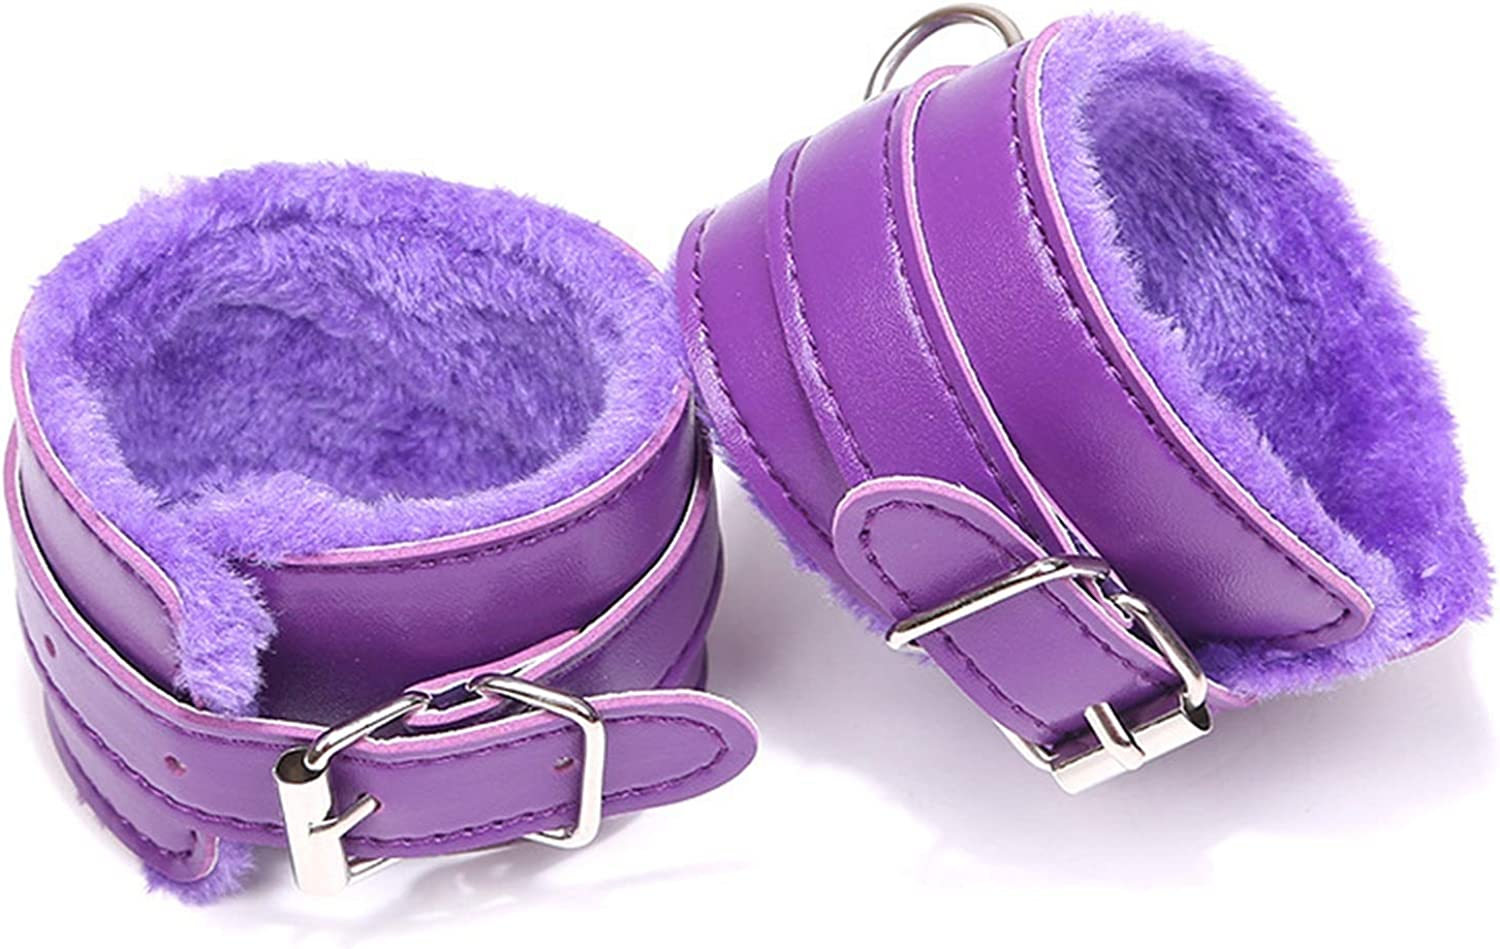 2021 New Fluffy Wrist Leather Handcuffs Bracelet Soft Plush Lining Wrist Handcuffs Bracelet Leg Cuffs Role Play Exercise Bands Leash Detachable for Home Yoga Gyms Party Cosplay Jewelry Gift